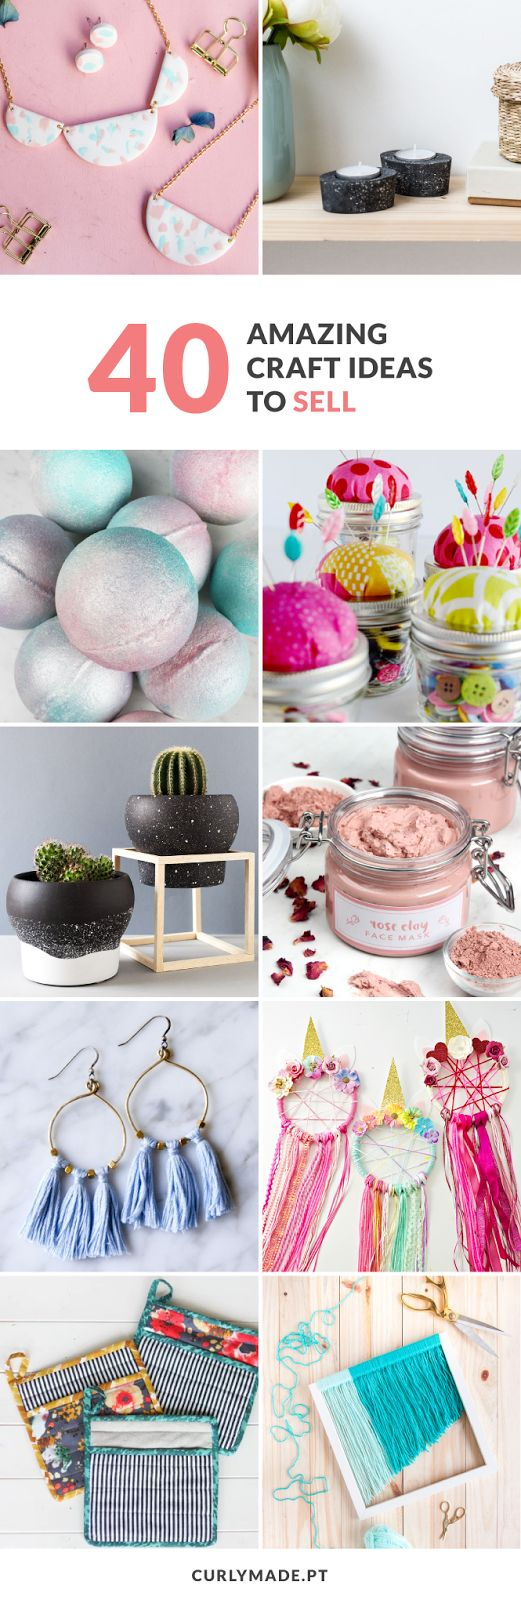 Best Ideas For Diy Crafts 40 Amazing Diy Craft Ideas To Sell